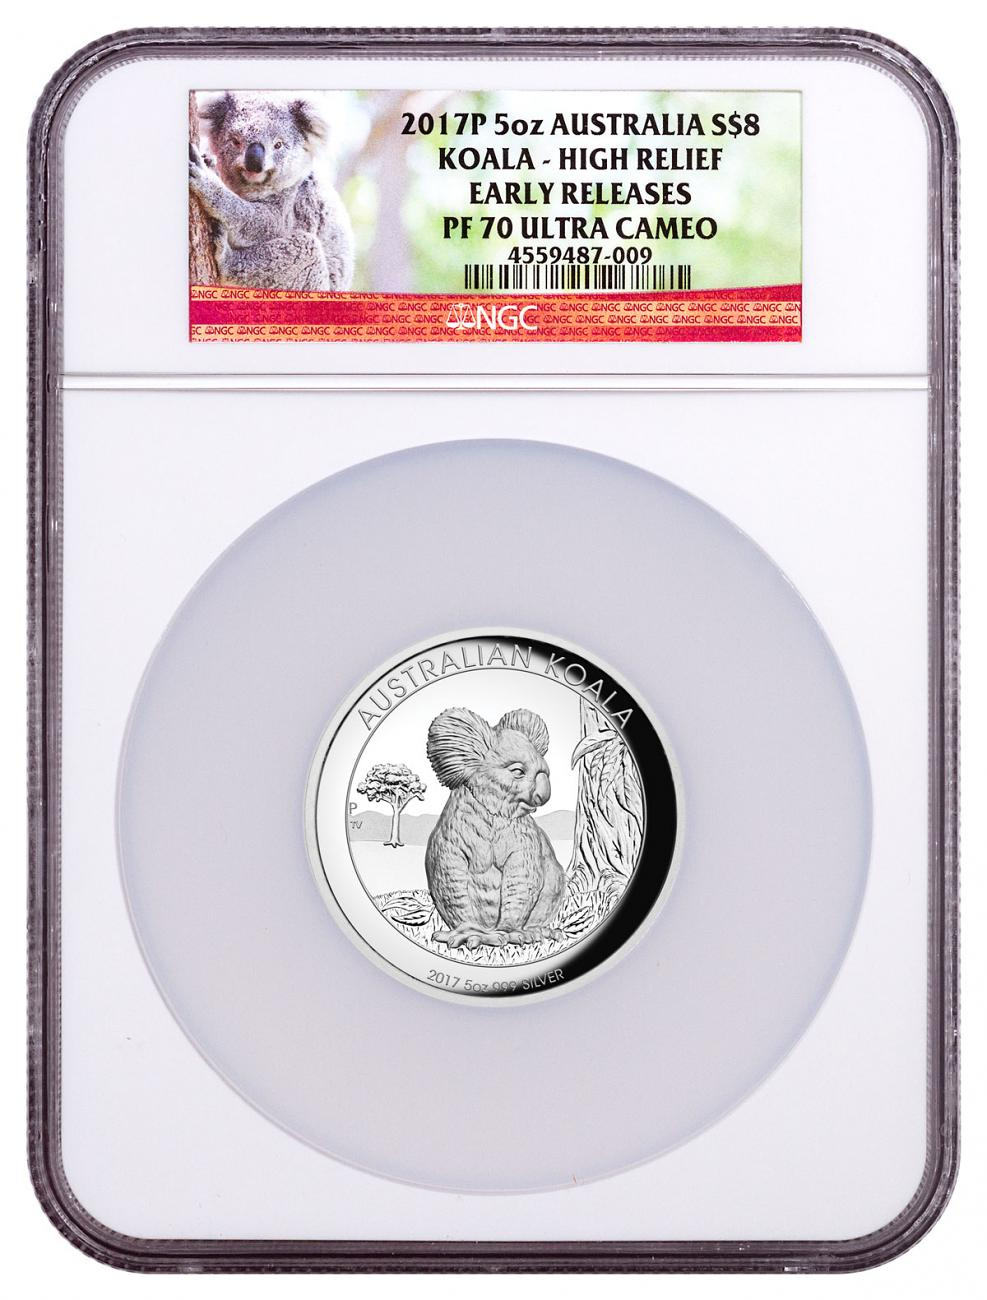 2017-P Australia 5 oz High Relief Silver Koala - Proof $8 Coin NGC PF70 UC ER